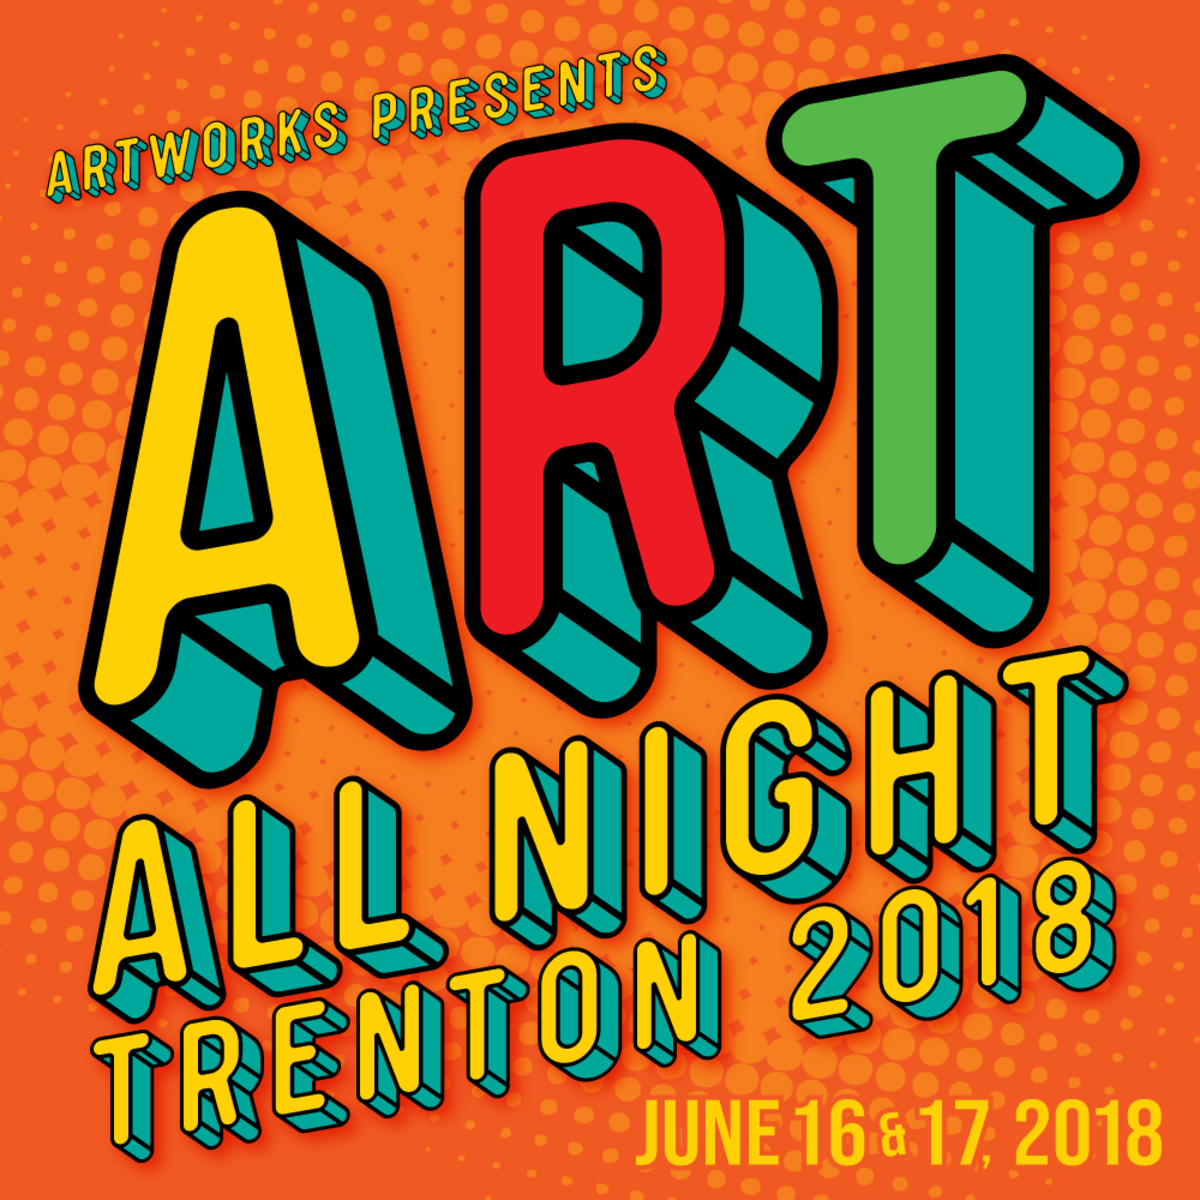 Art All Night Trenton